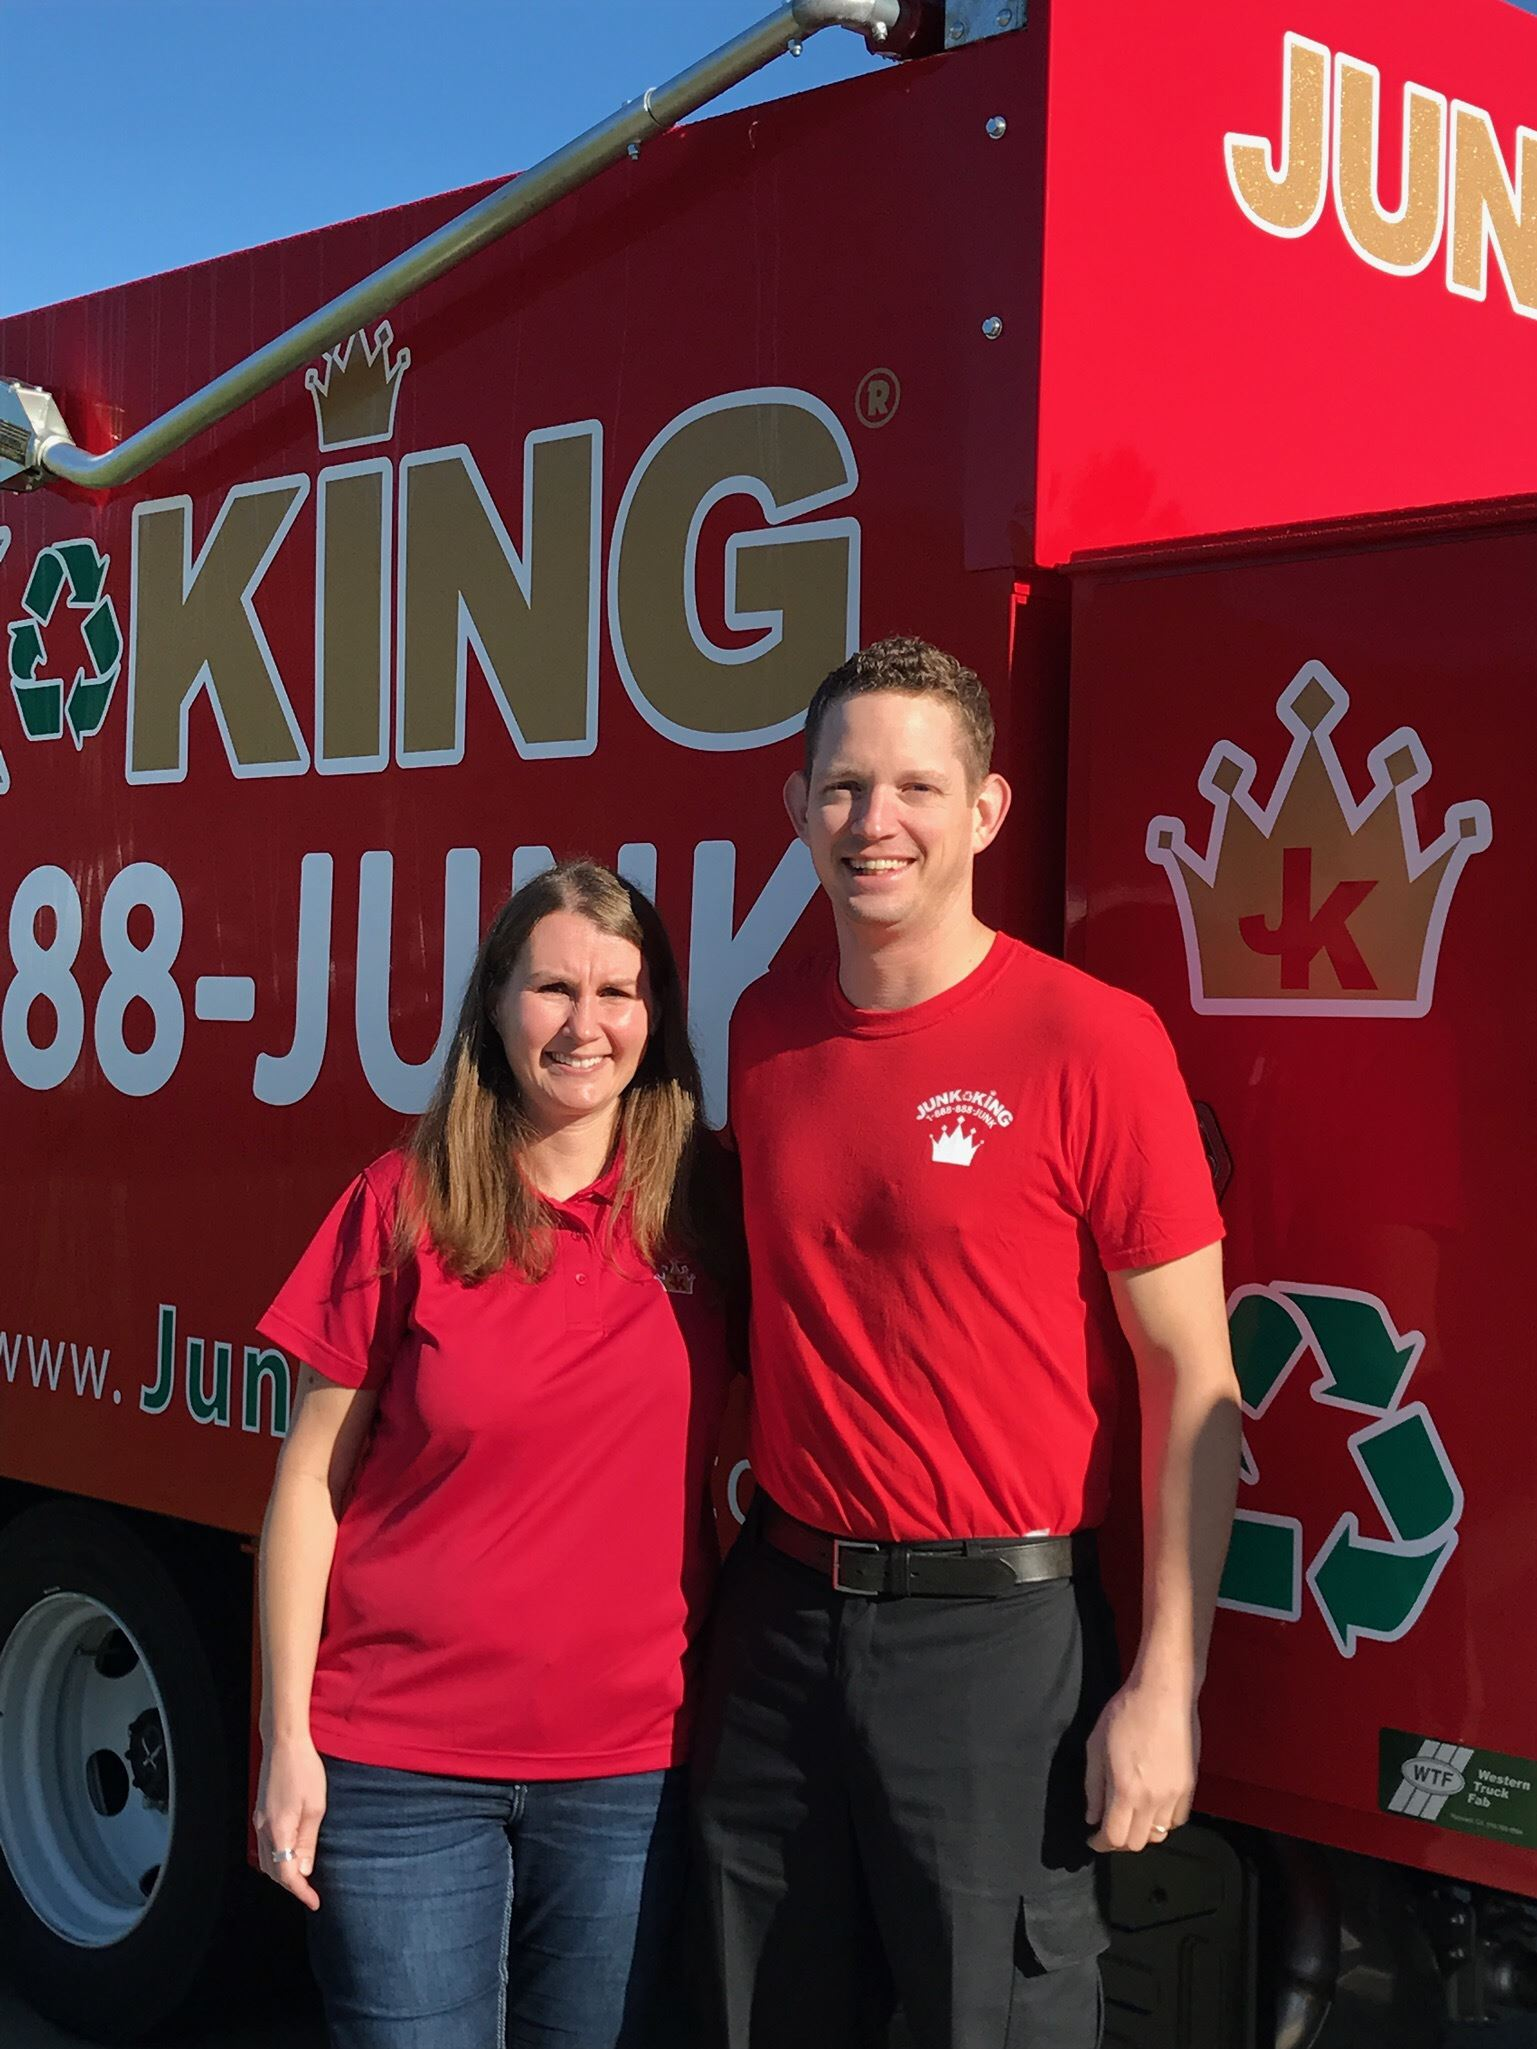 Junk King Franchise Owner,  Jim & Jennifer.